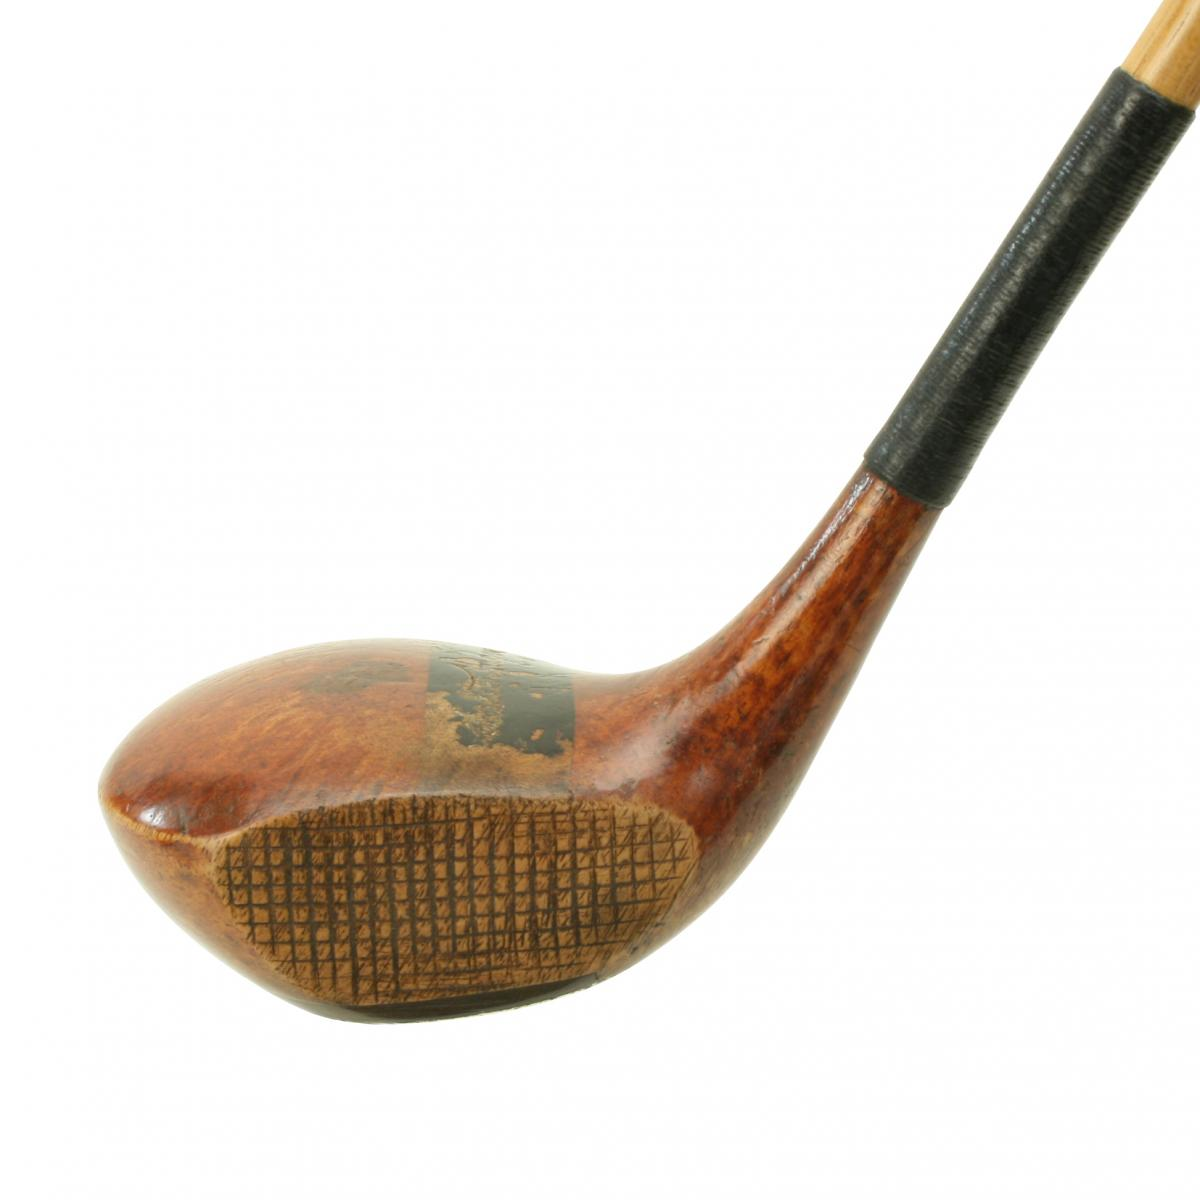 Vintage Walter Hagen Golf Clubs Big Teenage Dicks